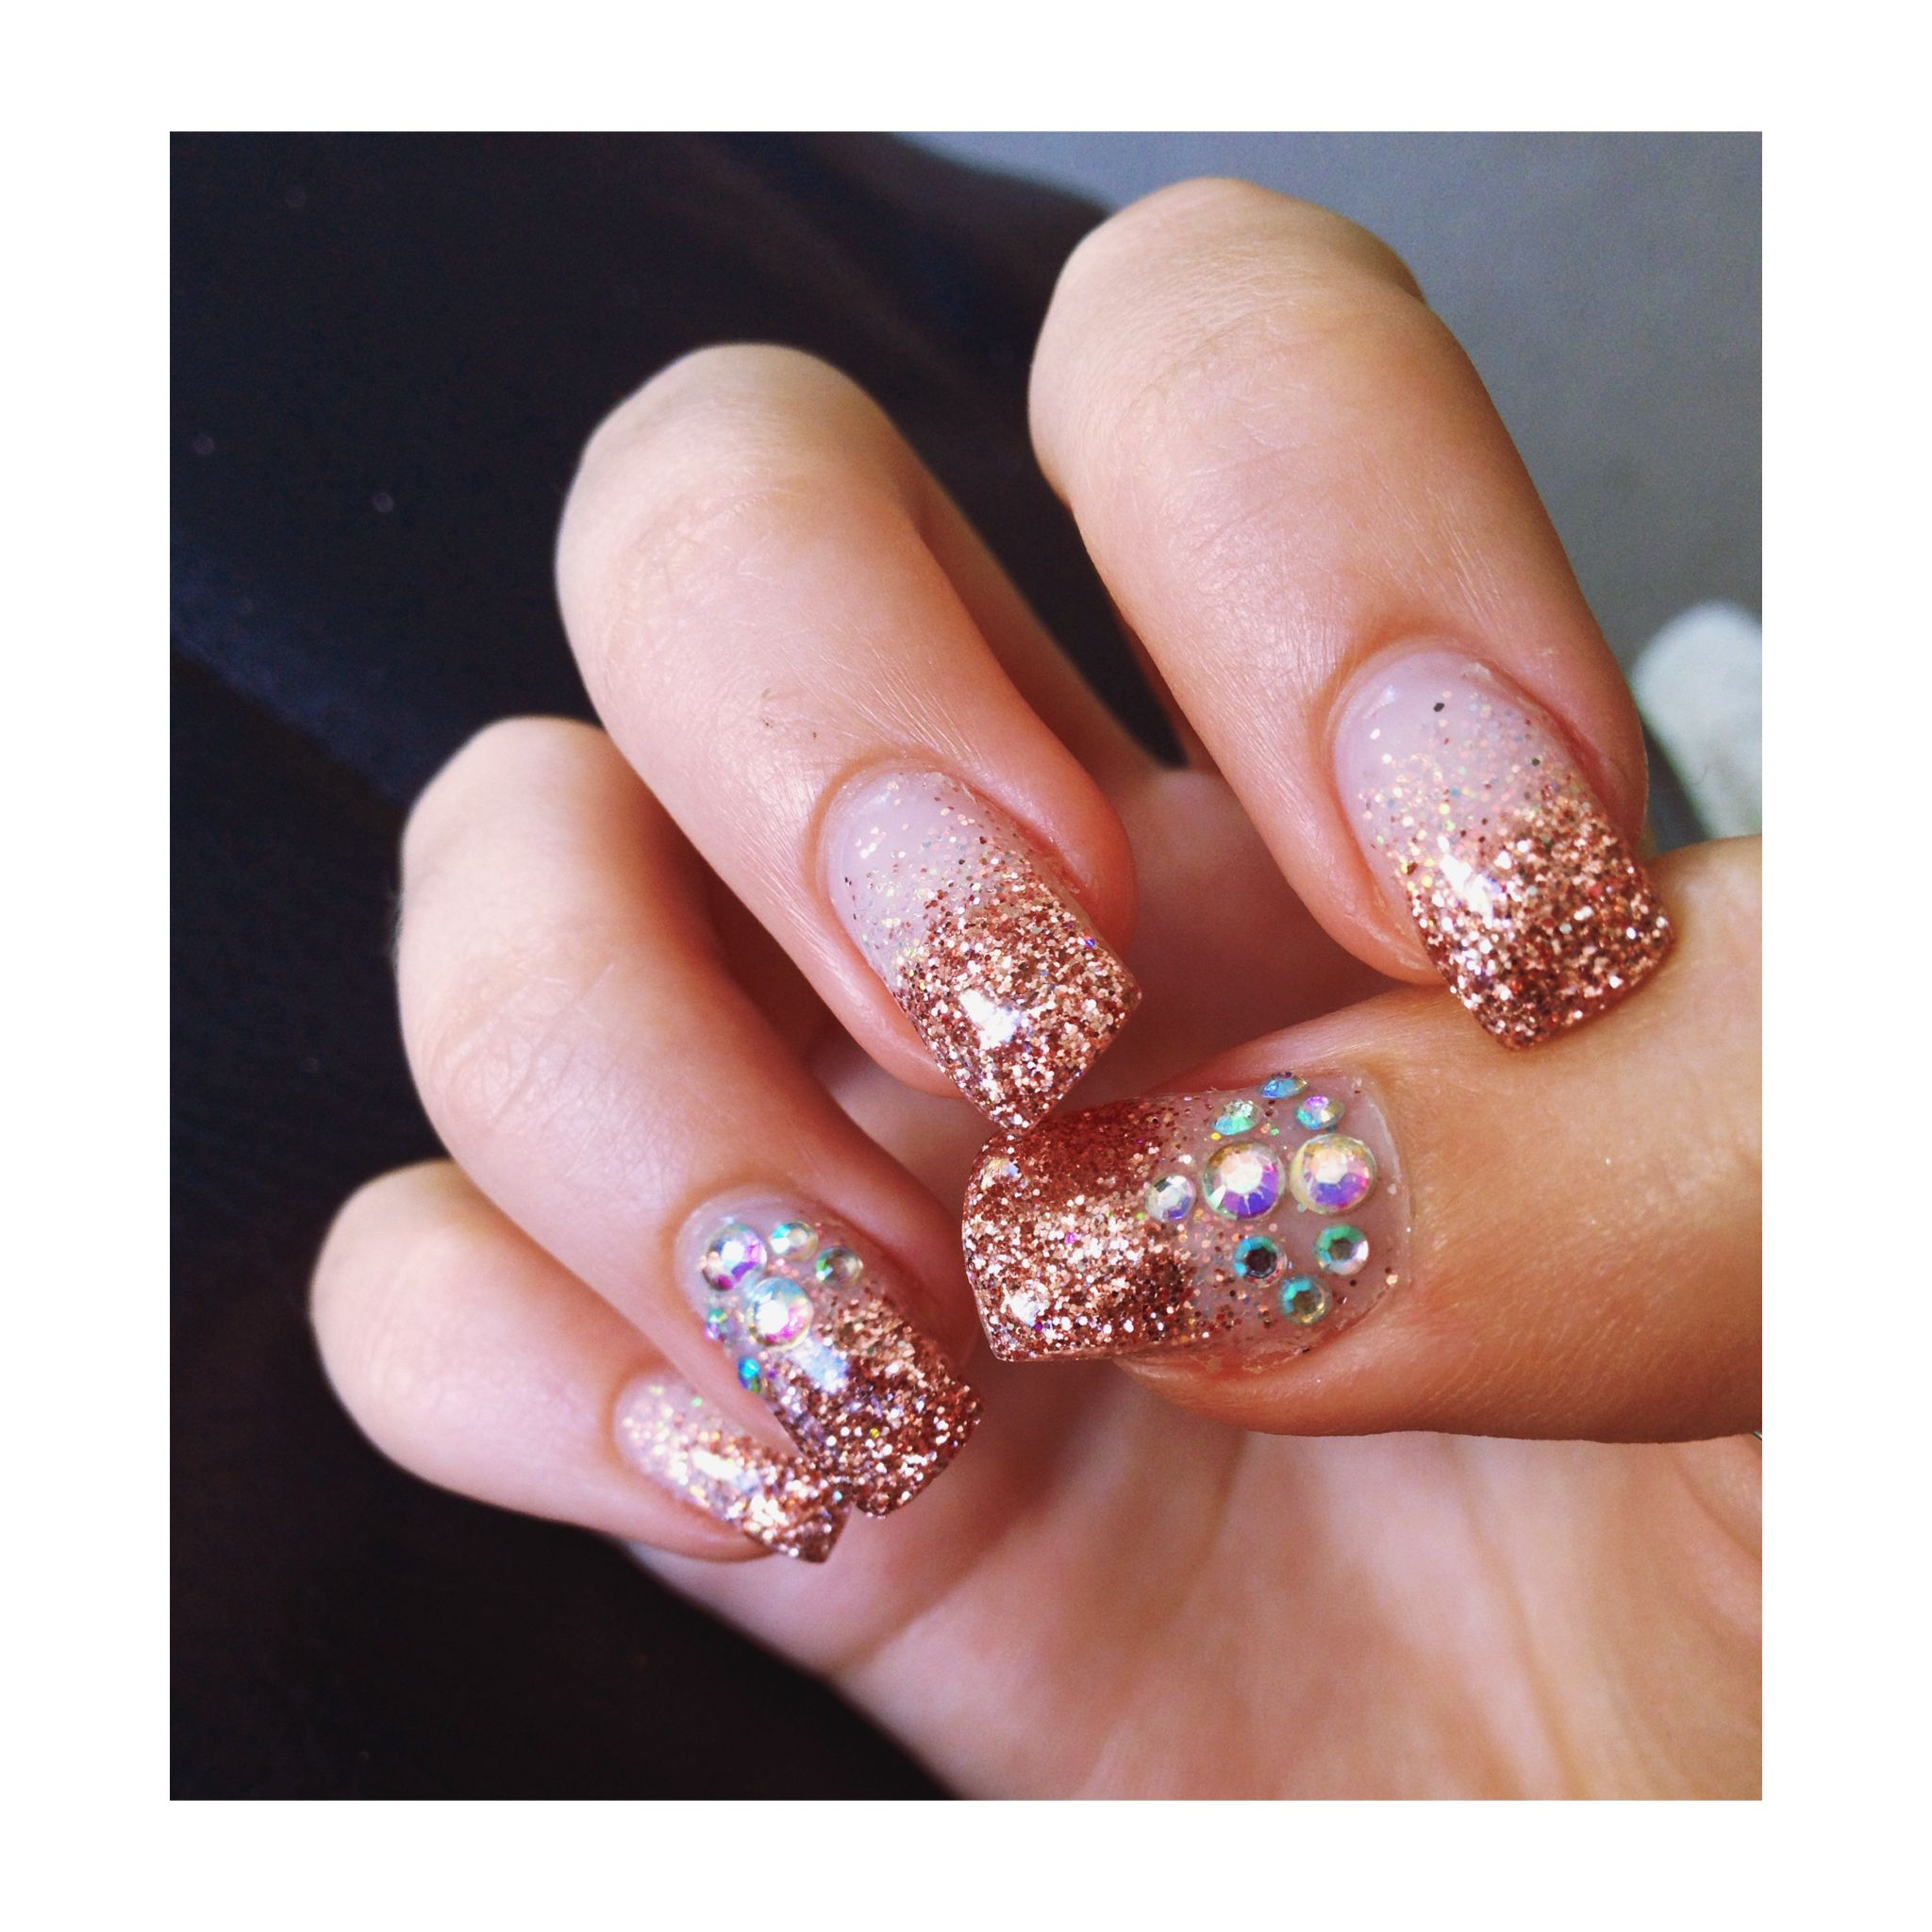 Gold For Prom Nail Ideas: Prom Nail Ideas, With Rose-gold Glitter And Crystal Gems